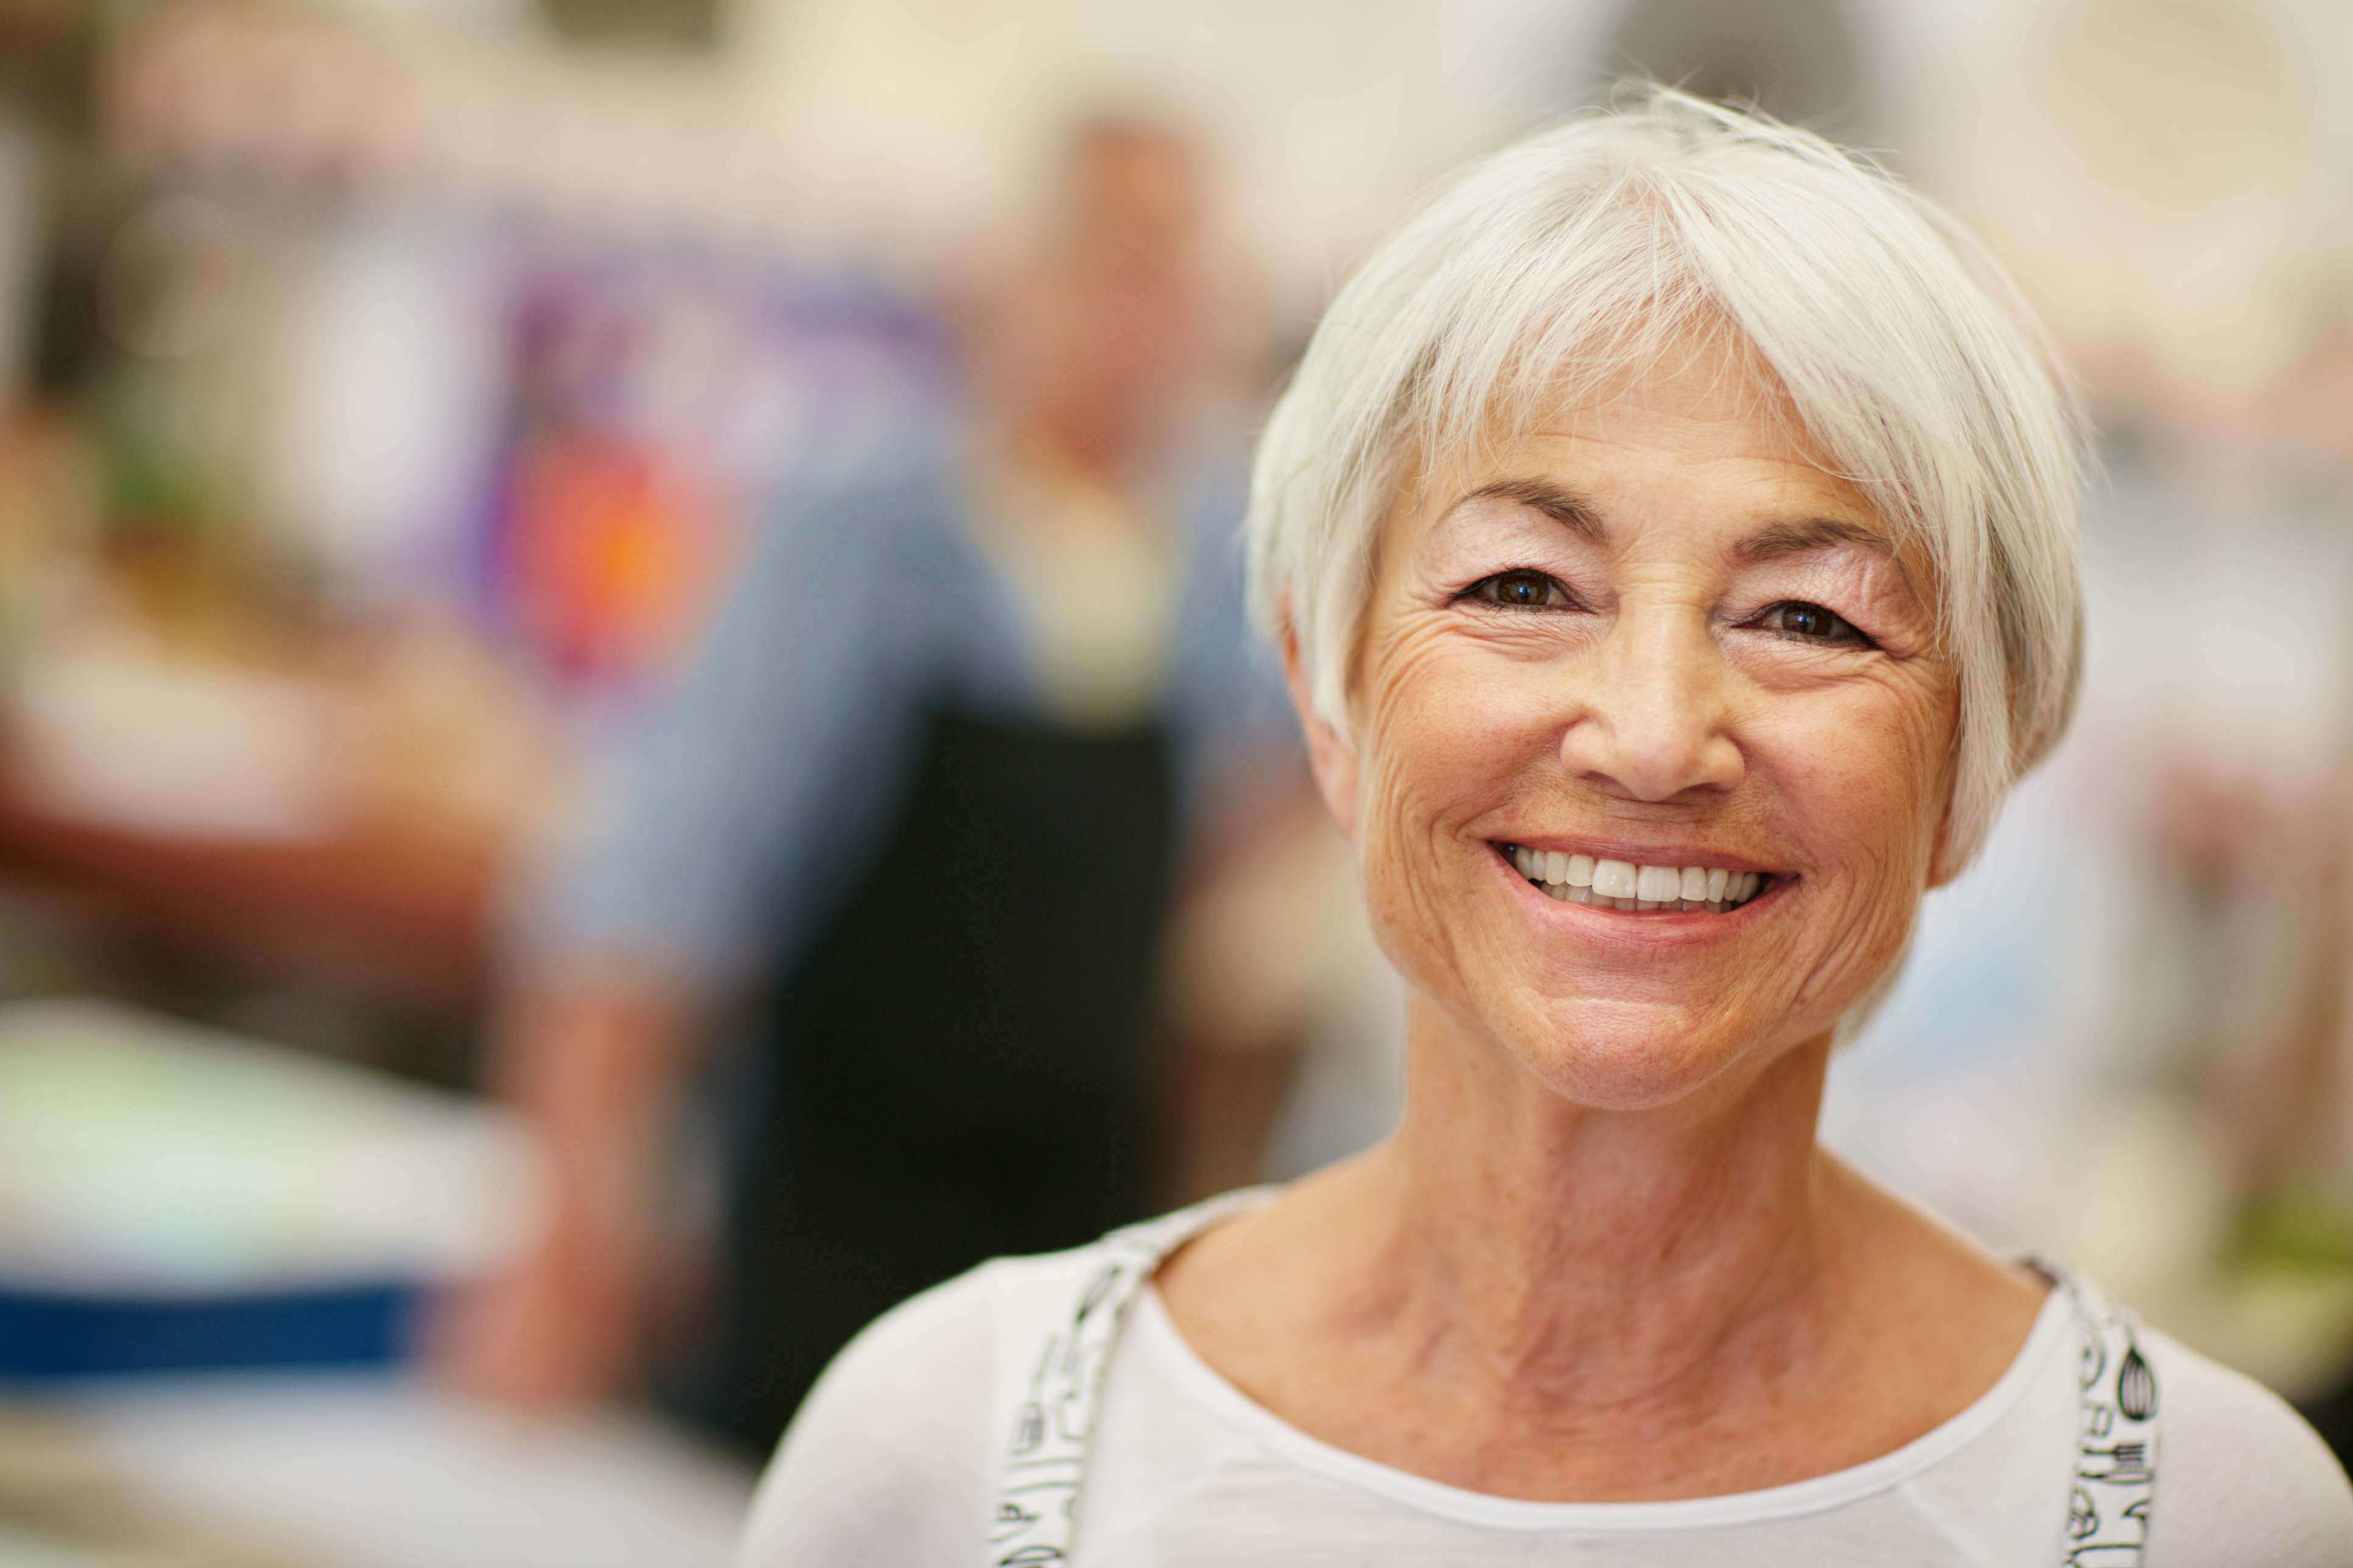 Costs of dental care too high for some seniors